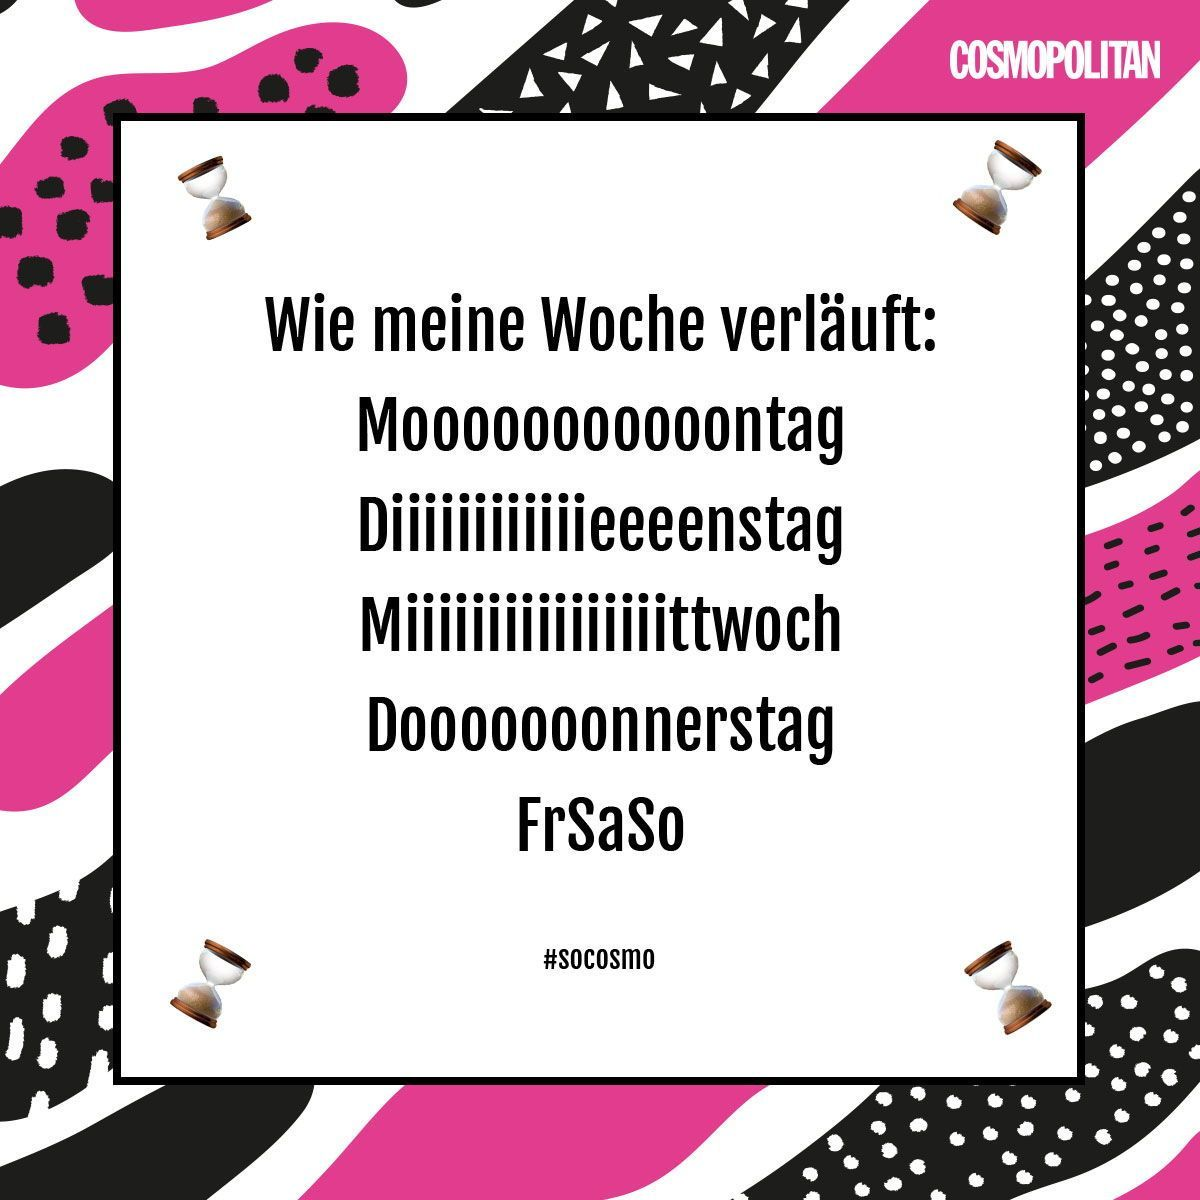 Instagram Spruche Die Besten Cosmo Spruche Fur Instagram Funny Quotes Leadership Quotes Funny Quotes About Life